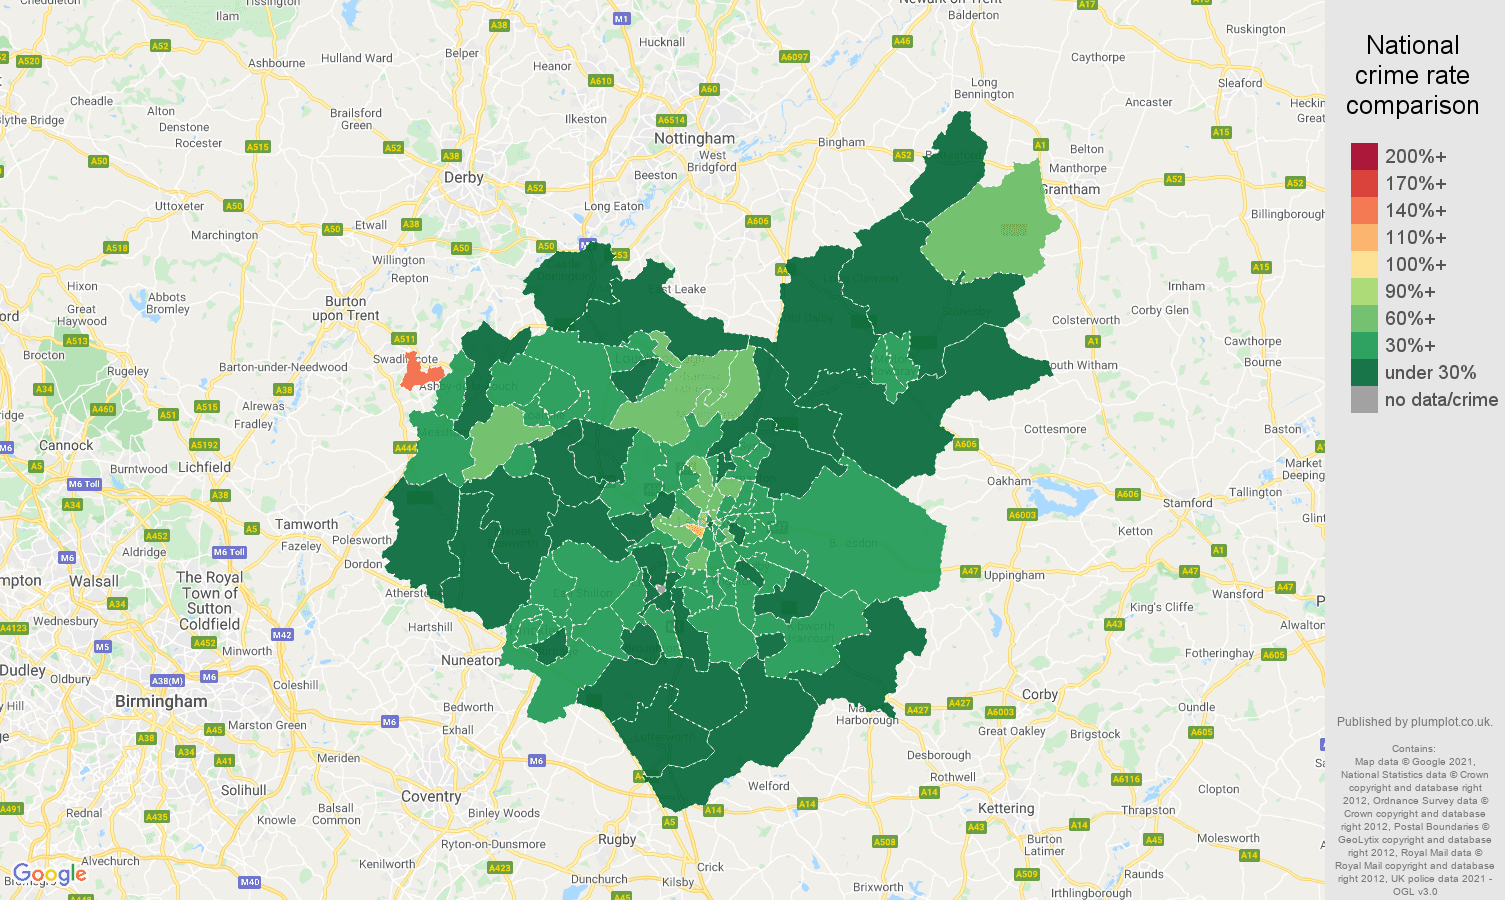 Leicestershire antisocial behaviour crime rate comparison map